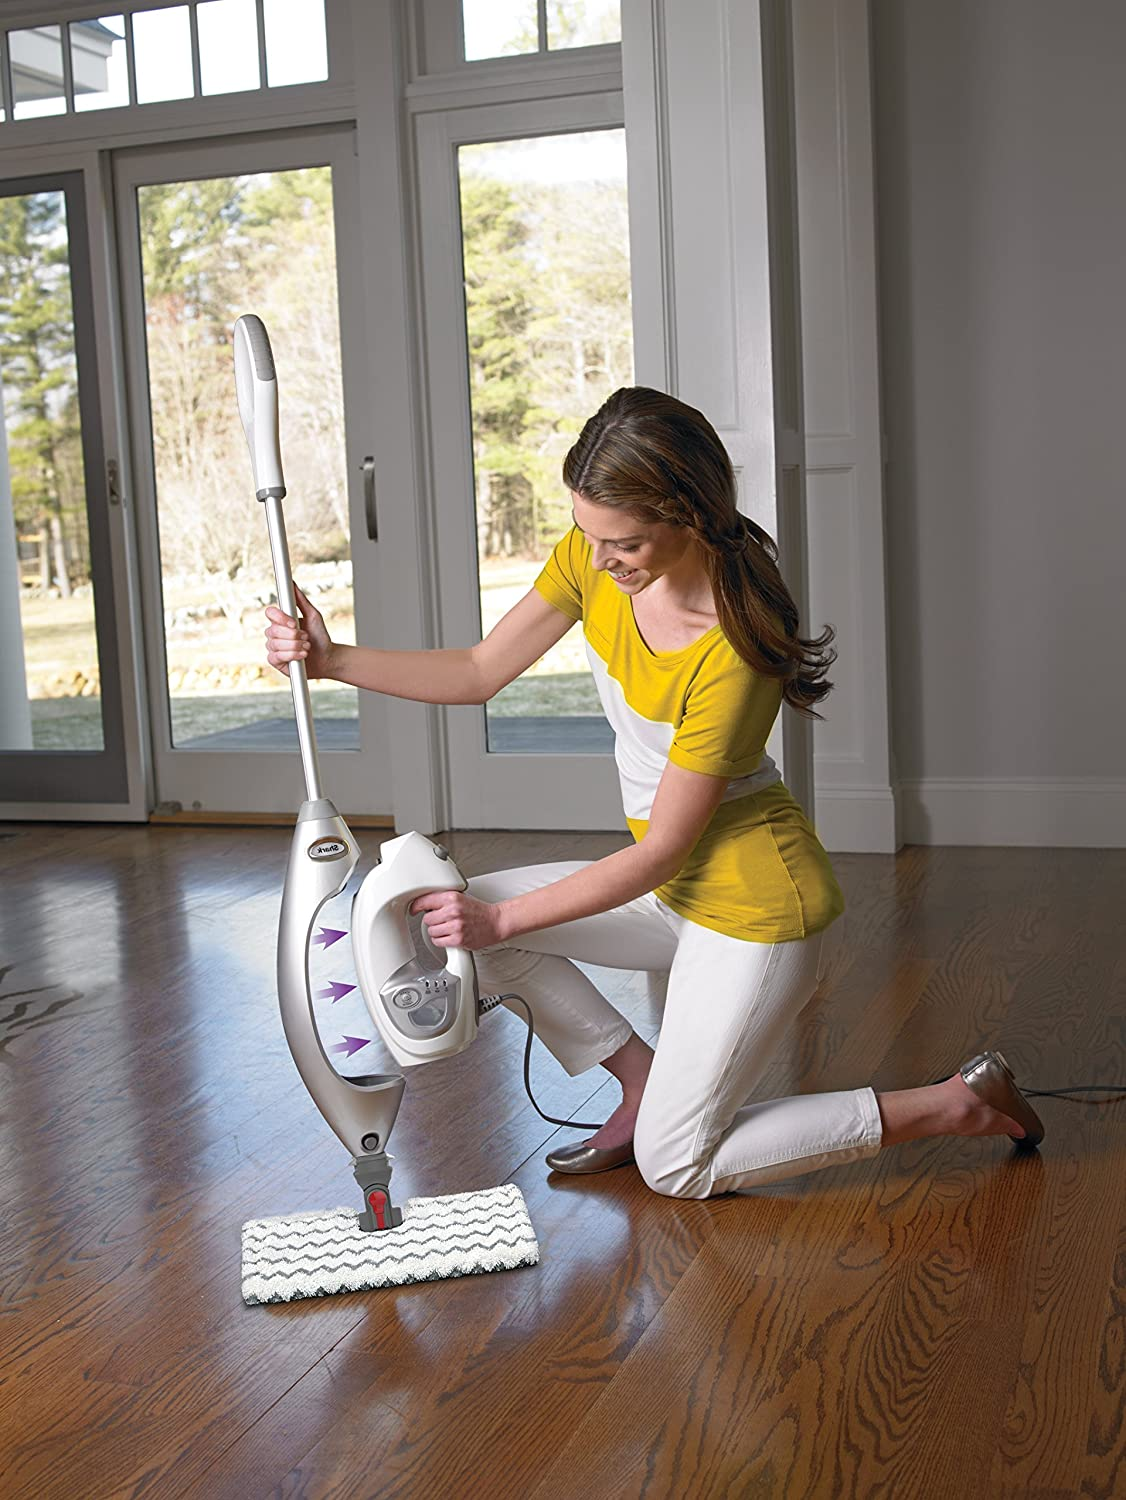 The Best Steam Mops For Sparkling Tile And Hardwood Floors